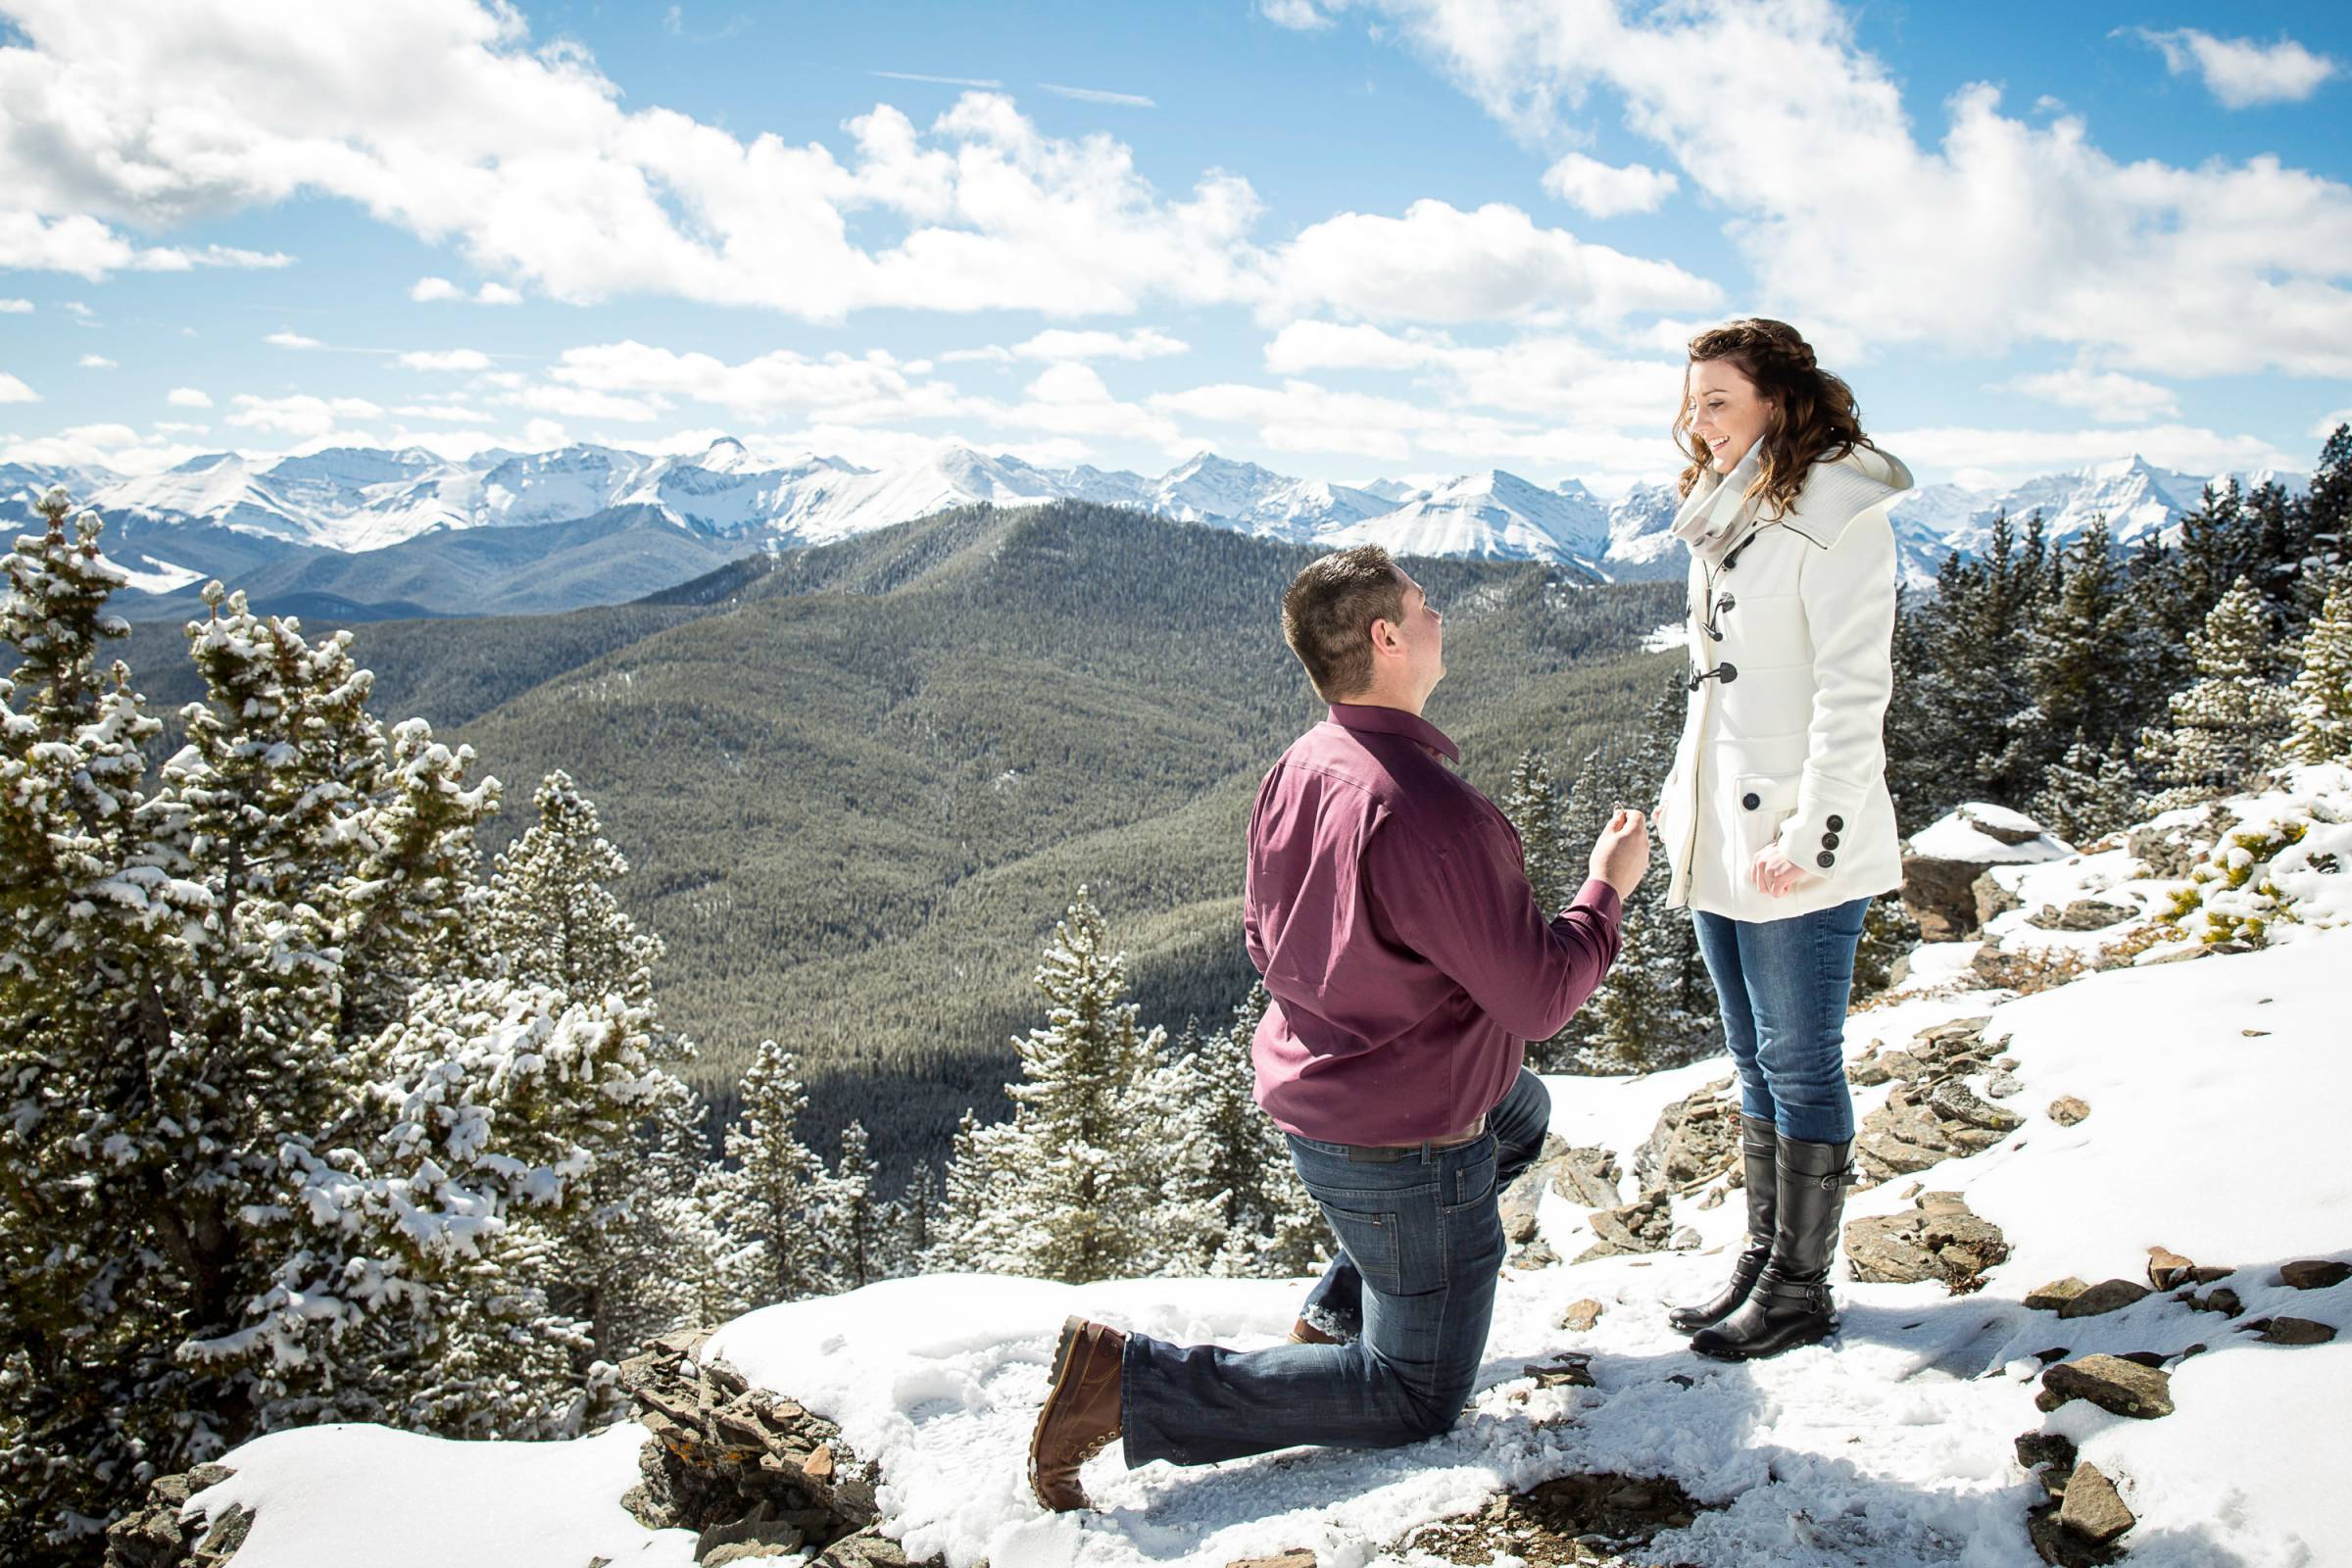 Heli Proposal, Kananaskis proposal, mountain top proposal, Banff Proposal, Banff wedding photographe